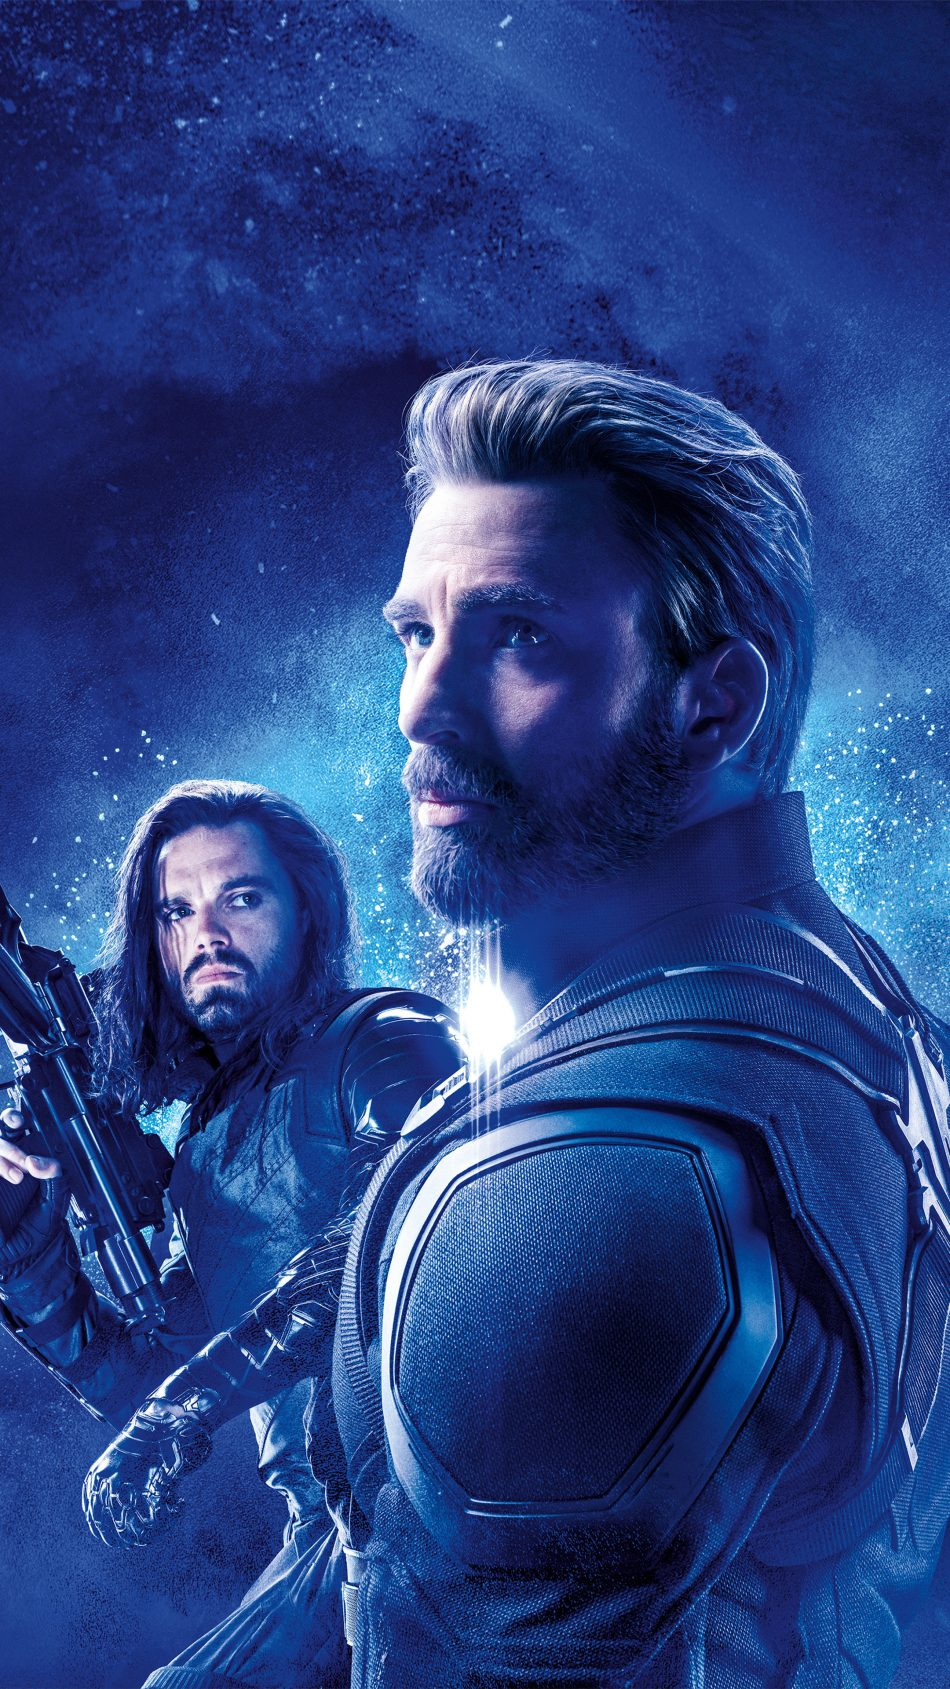 Captain America & Bucky Barnes In Avengers Endgame 4K Ultra HD Mobile Wallpaper